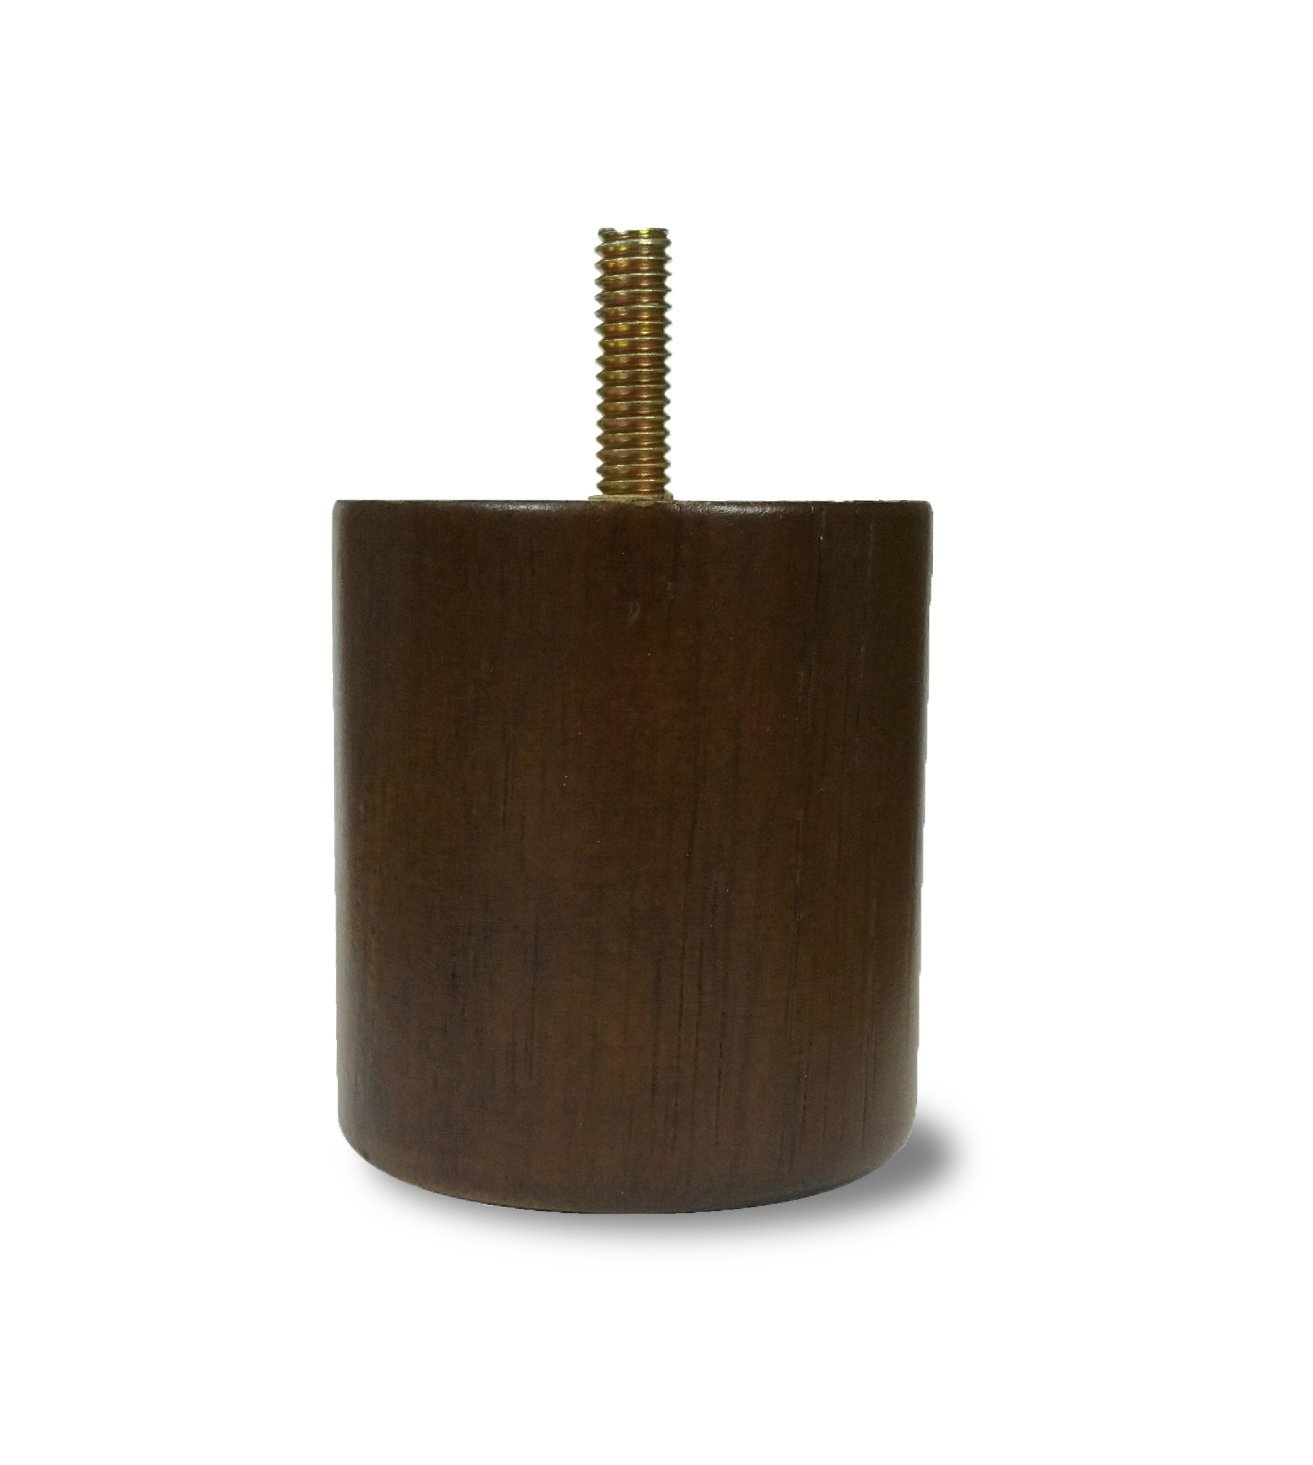 2 1/2'' Walnut Cylinder/Cylindrical Style Sofa/Couch/Chair Wood Legs [5/16'' Bolt] - Set of 4